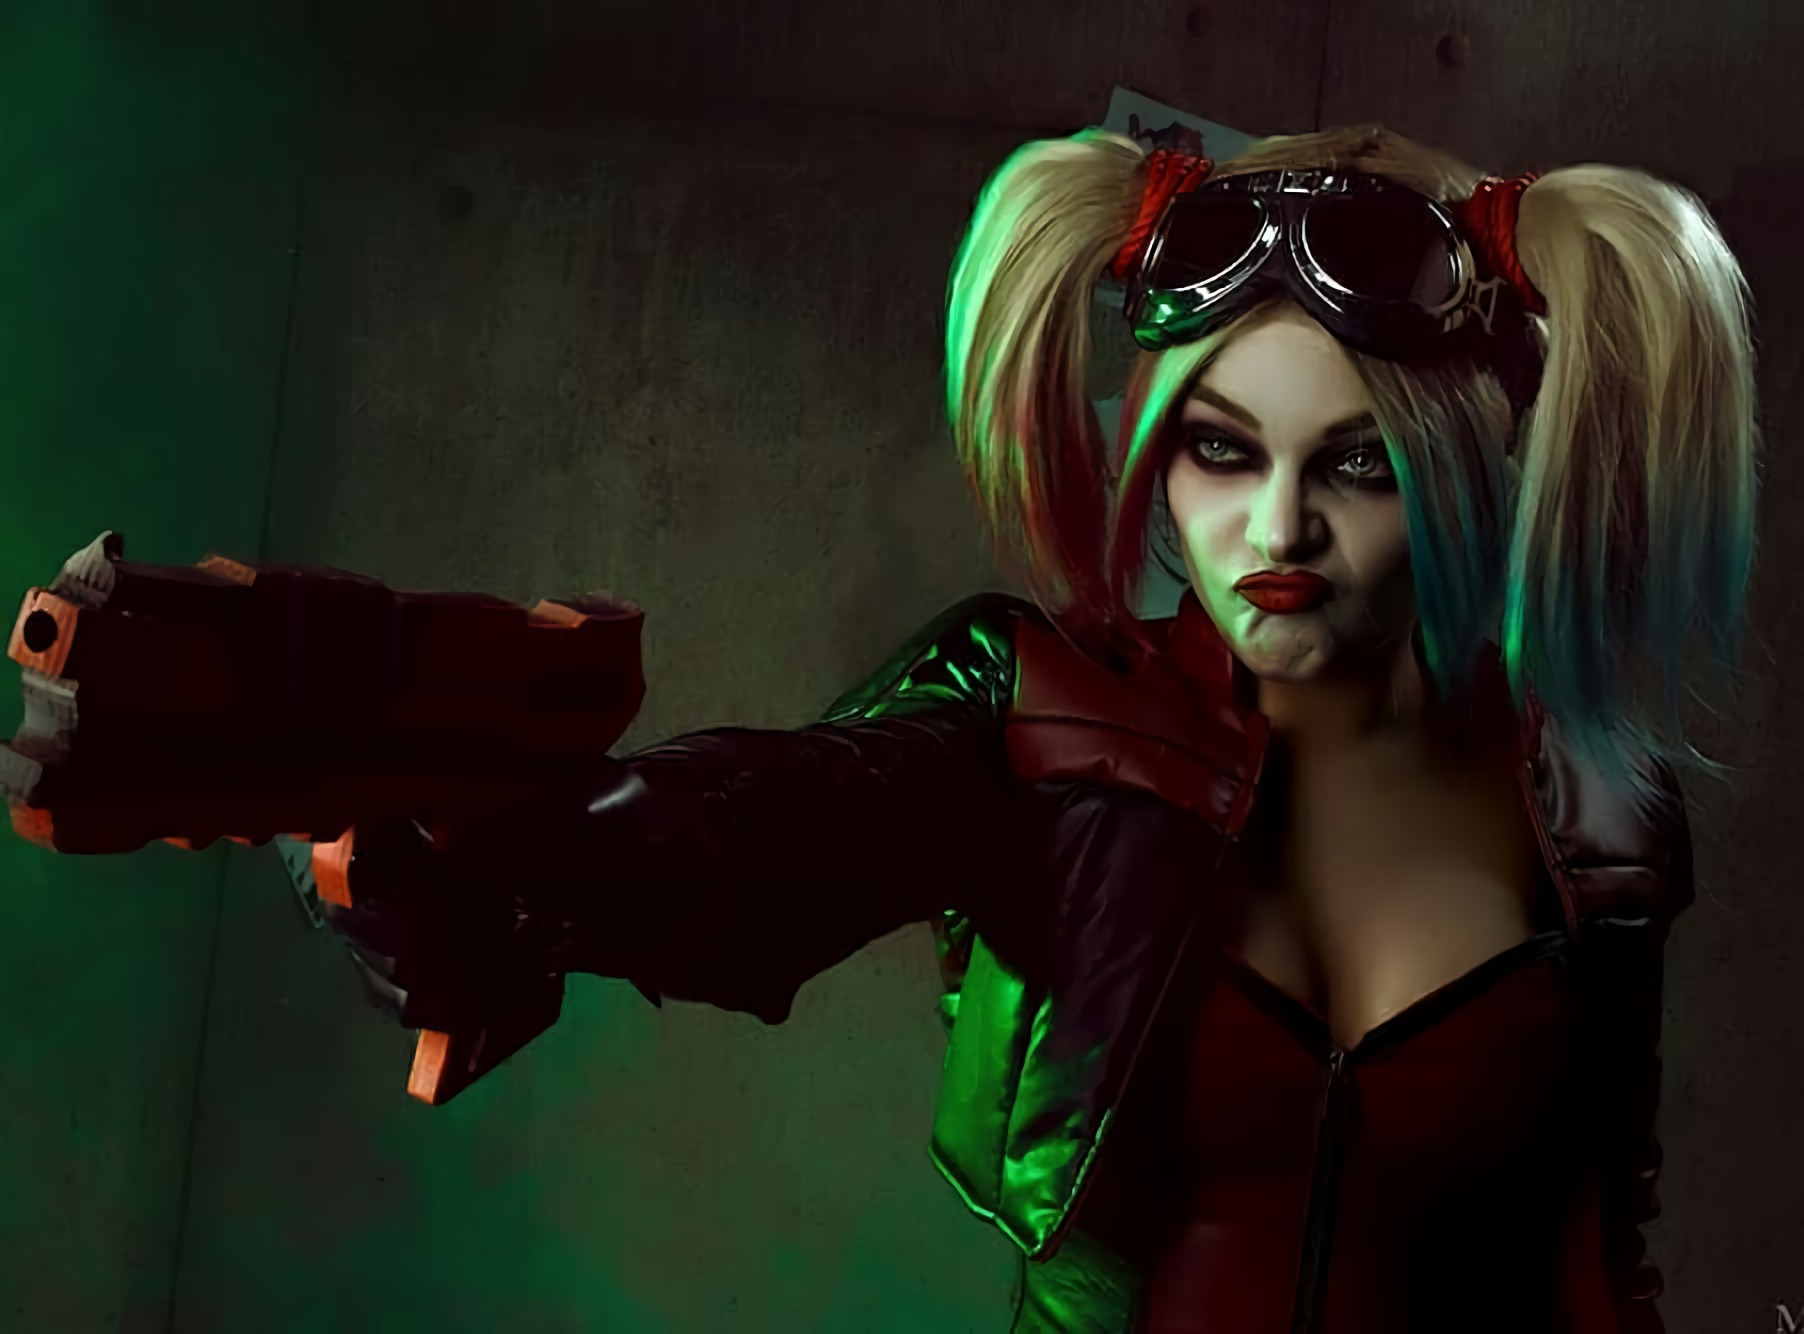 Injustice 2: Harley Quinn cosplay by Marika